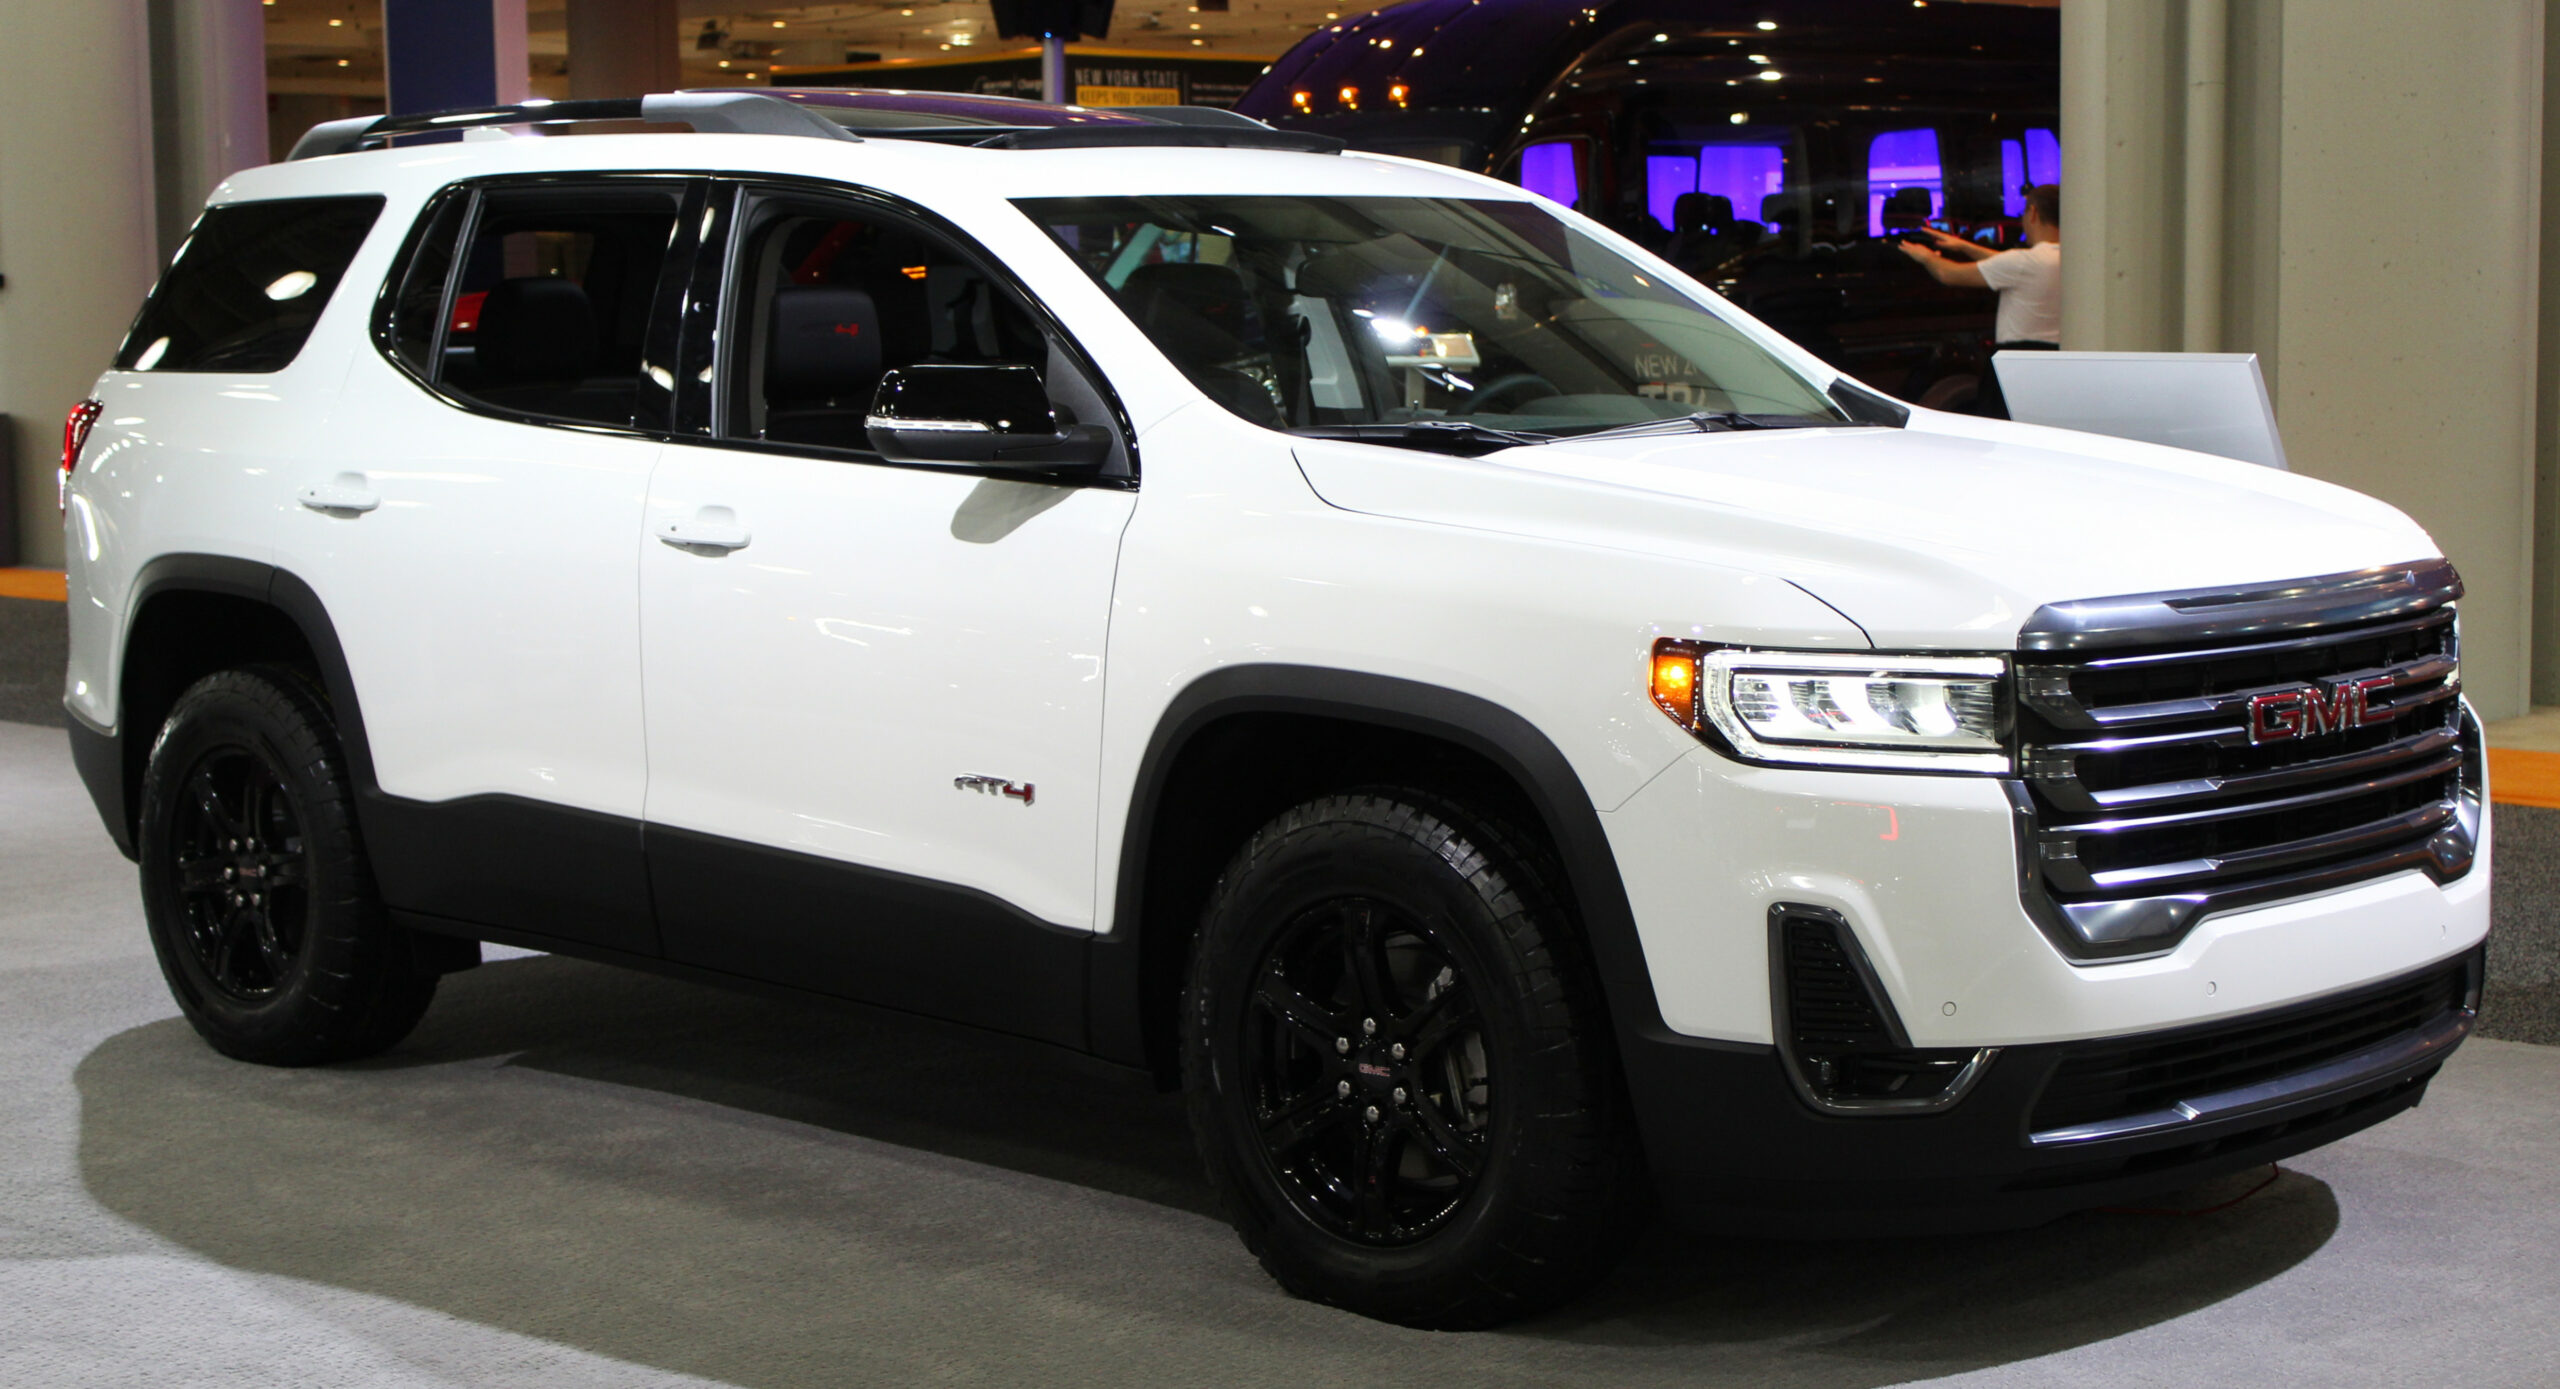 Datei:8 GMC Acadia AT8 front NYIAS 8